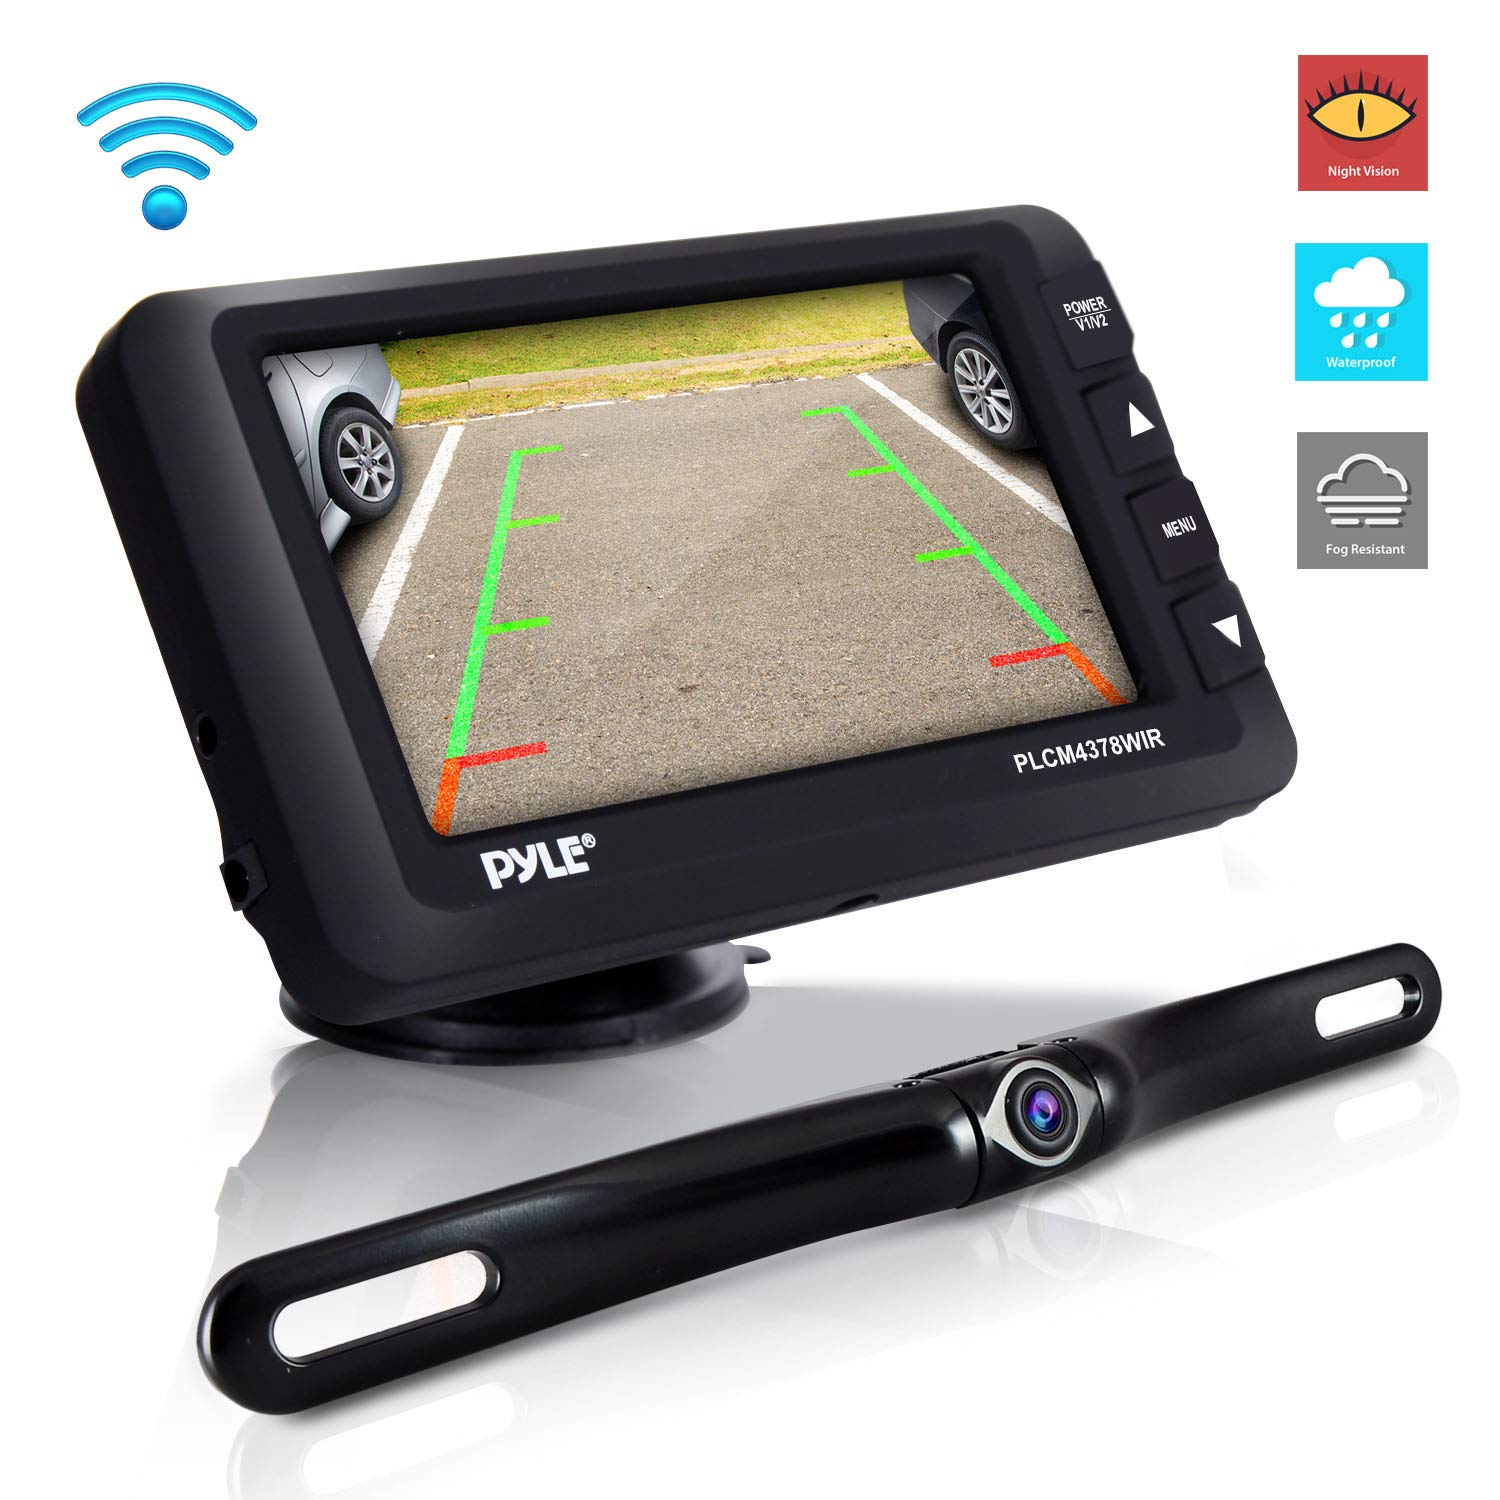 Wireless Rear View Backup Camera - Upgraded Vehicle Parking Reverse System w/Monitor Kit, IP67 Waterproof and Fog Resistant, 4.3'' LCD Screen, Tilt-Adjustable Dash Cam, Night Vision - Pyle